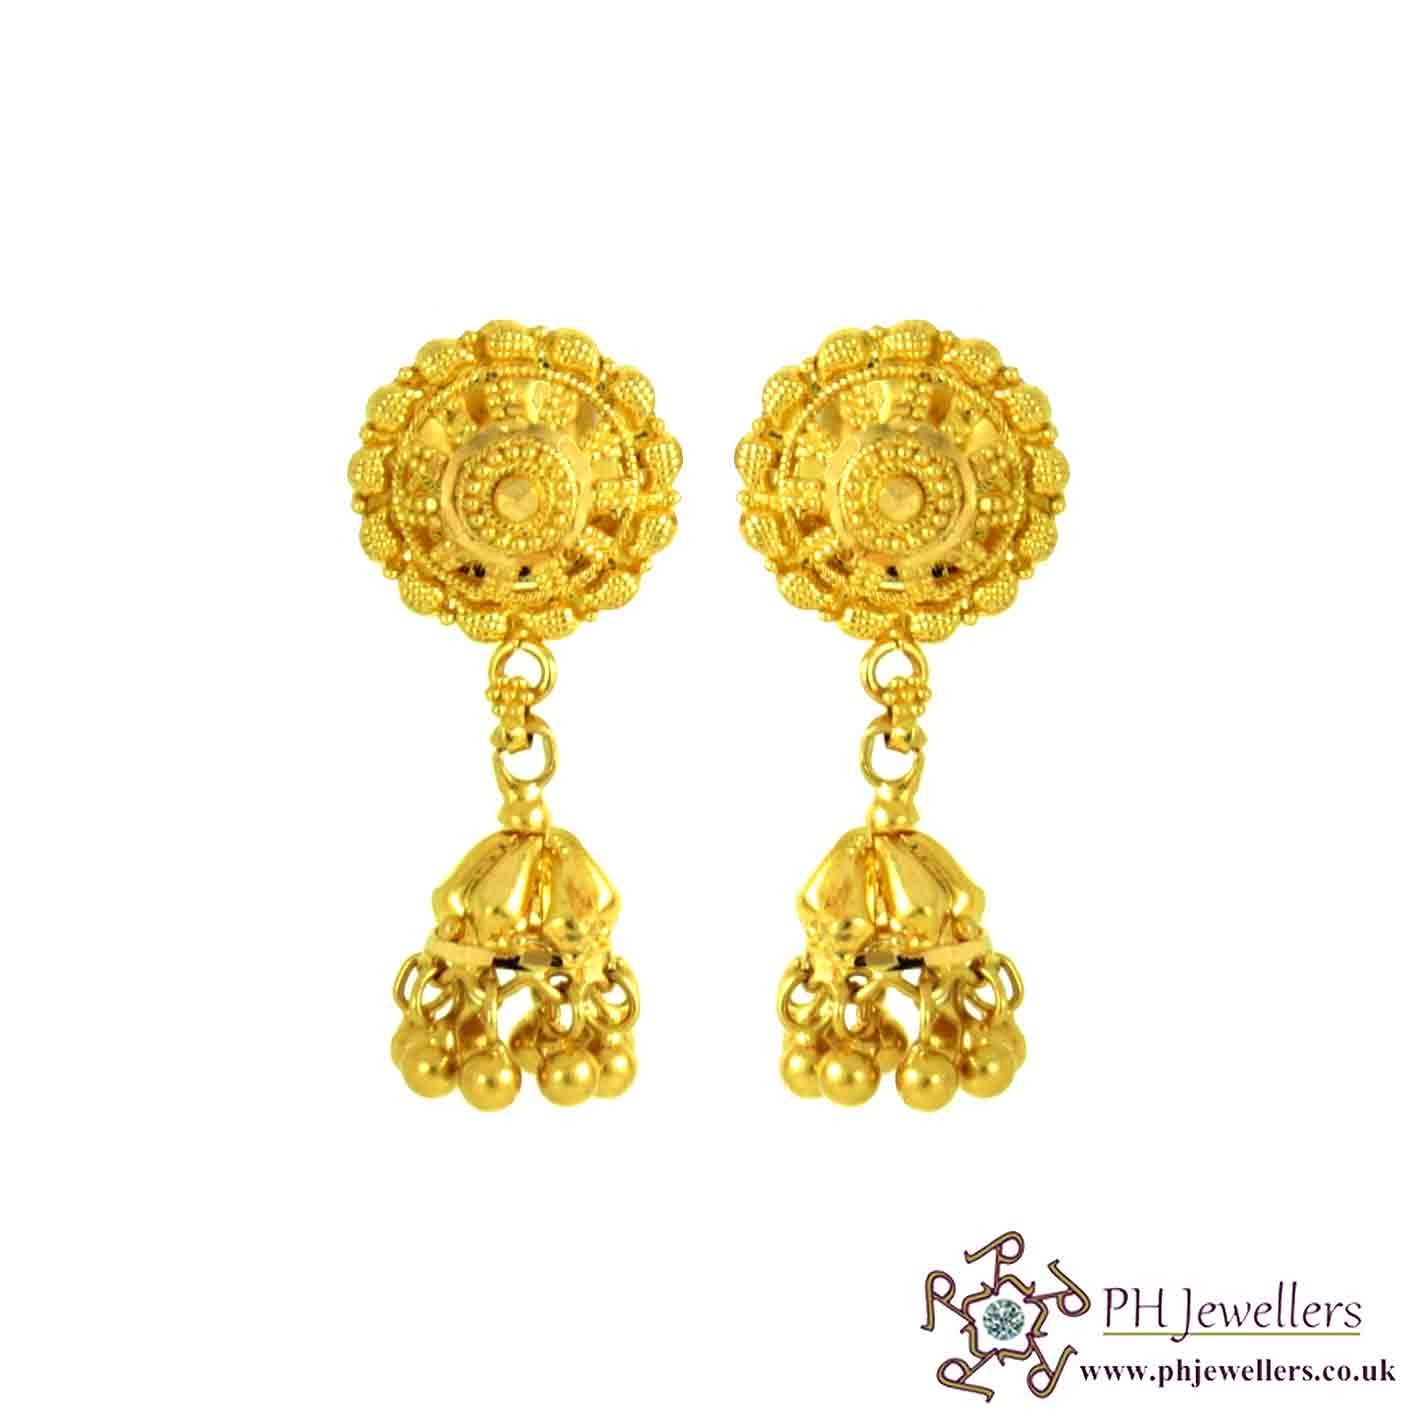 Online Gold Jewellery Gold Jewellery 22ct 916 Hallmark Yellow Gold ...